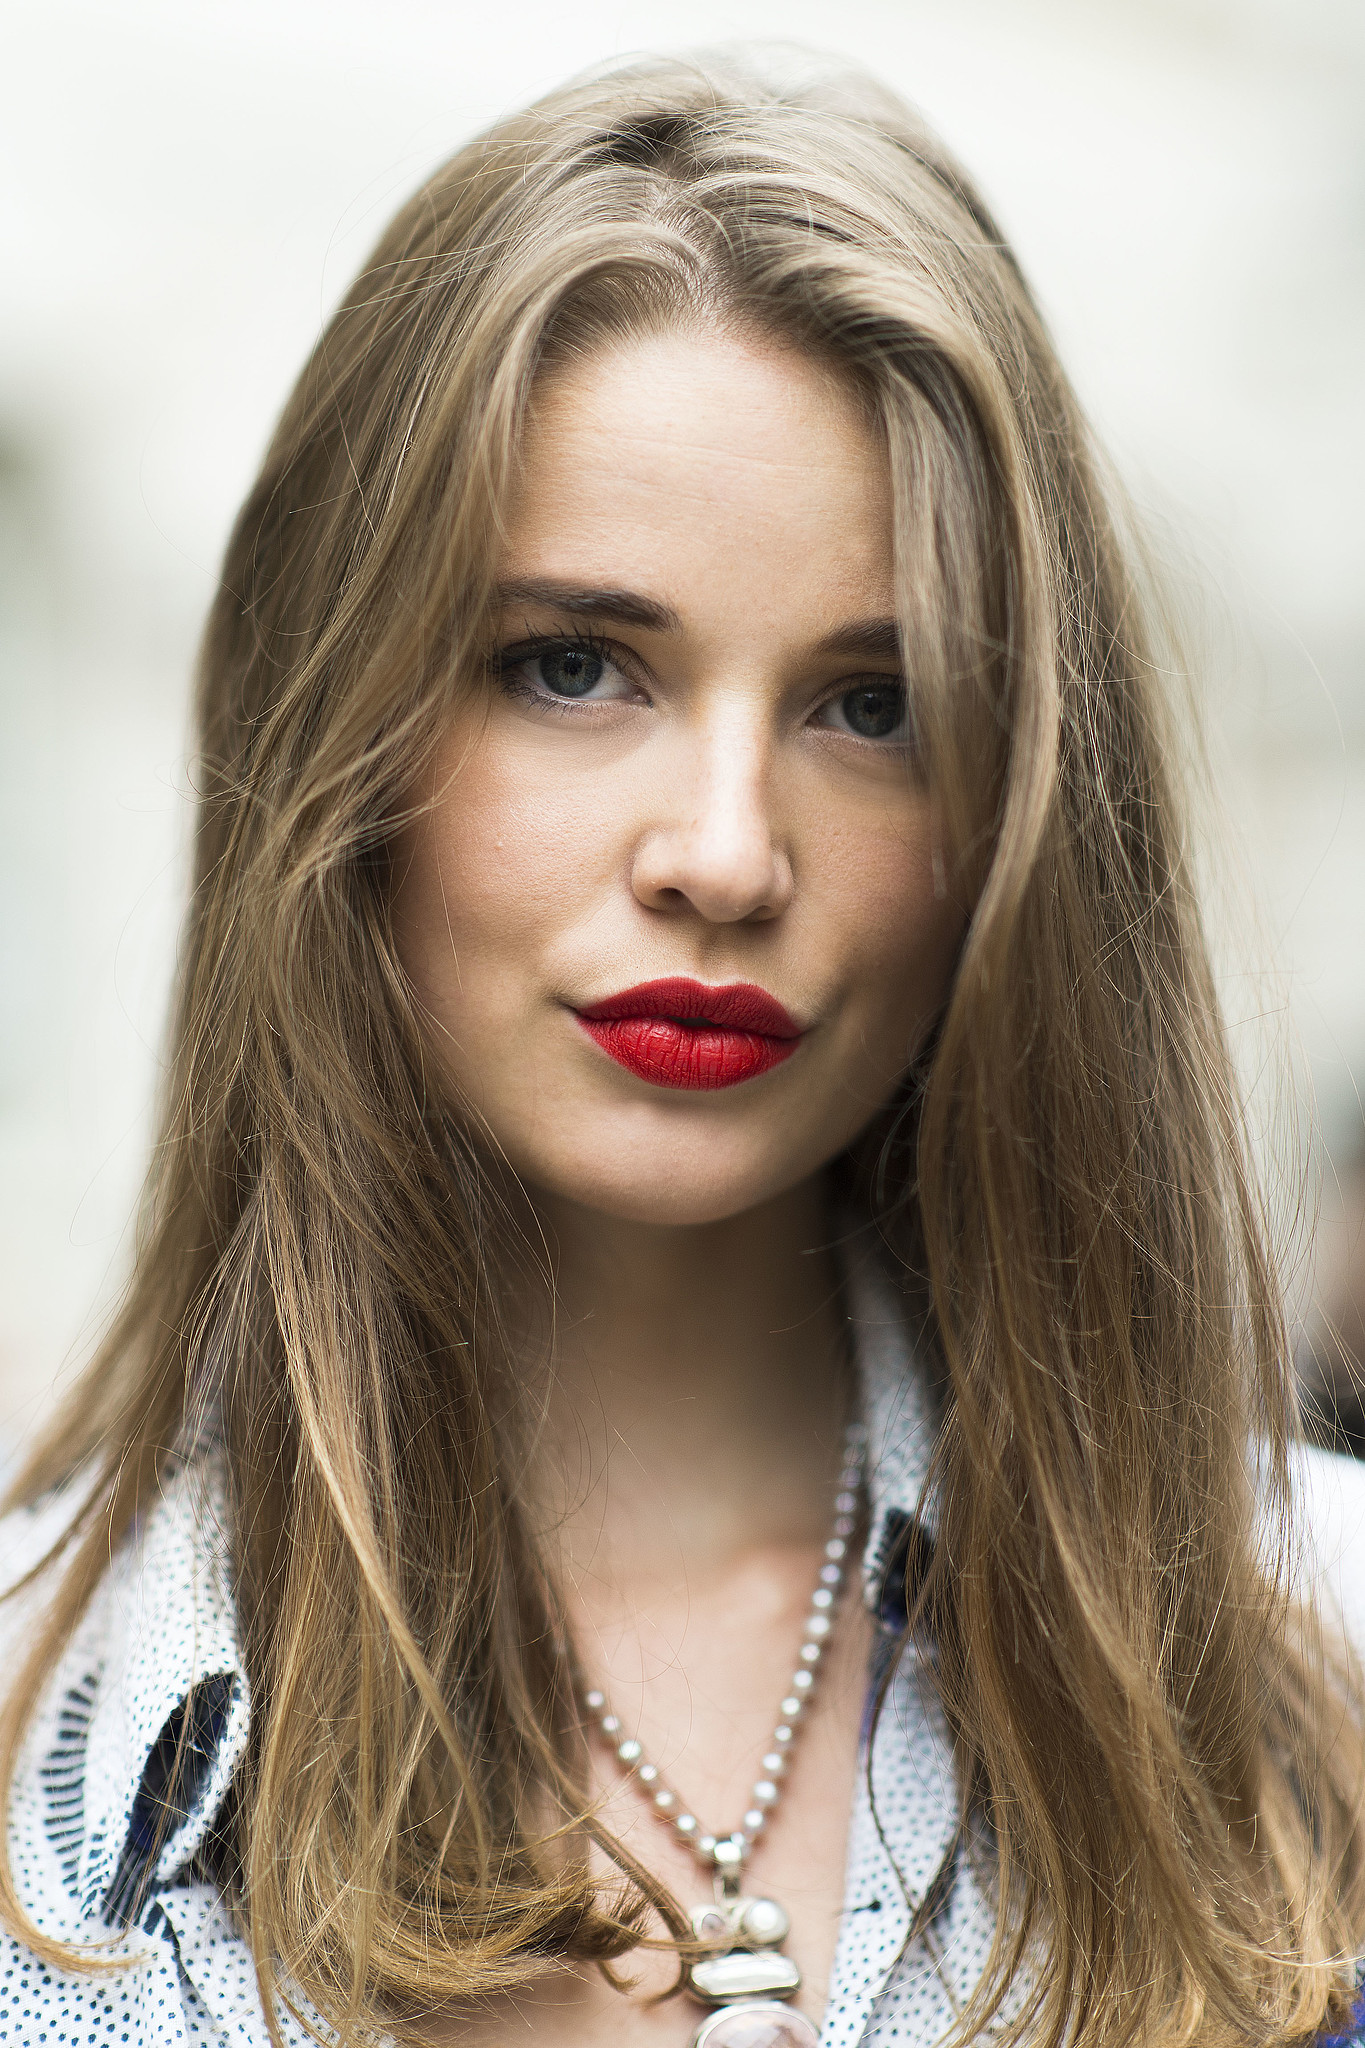 A swipe of lipstick is always the best way to pull a look together. Source: Le 21ème | Adam Katz Sinding